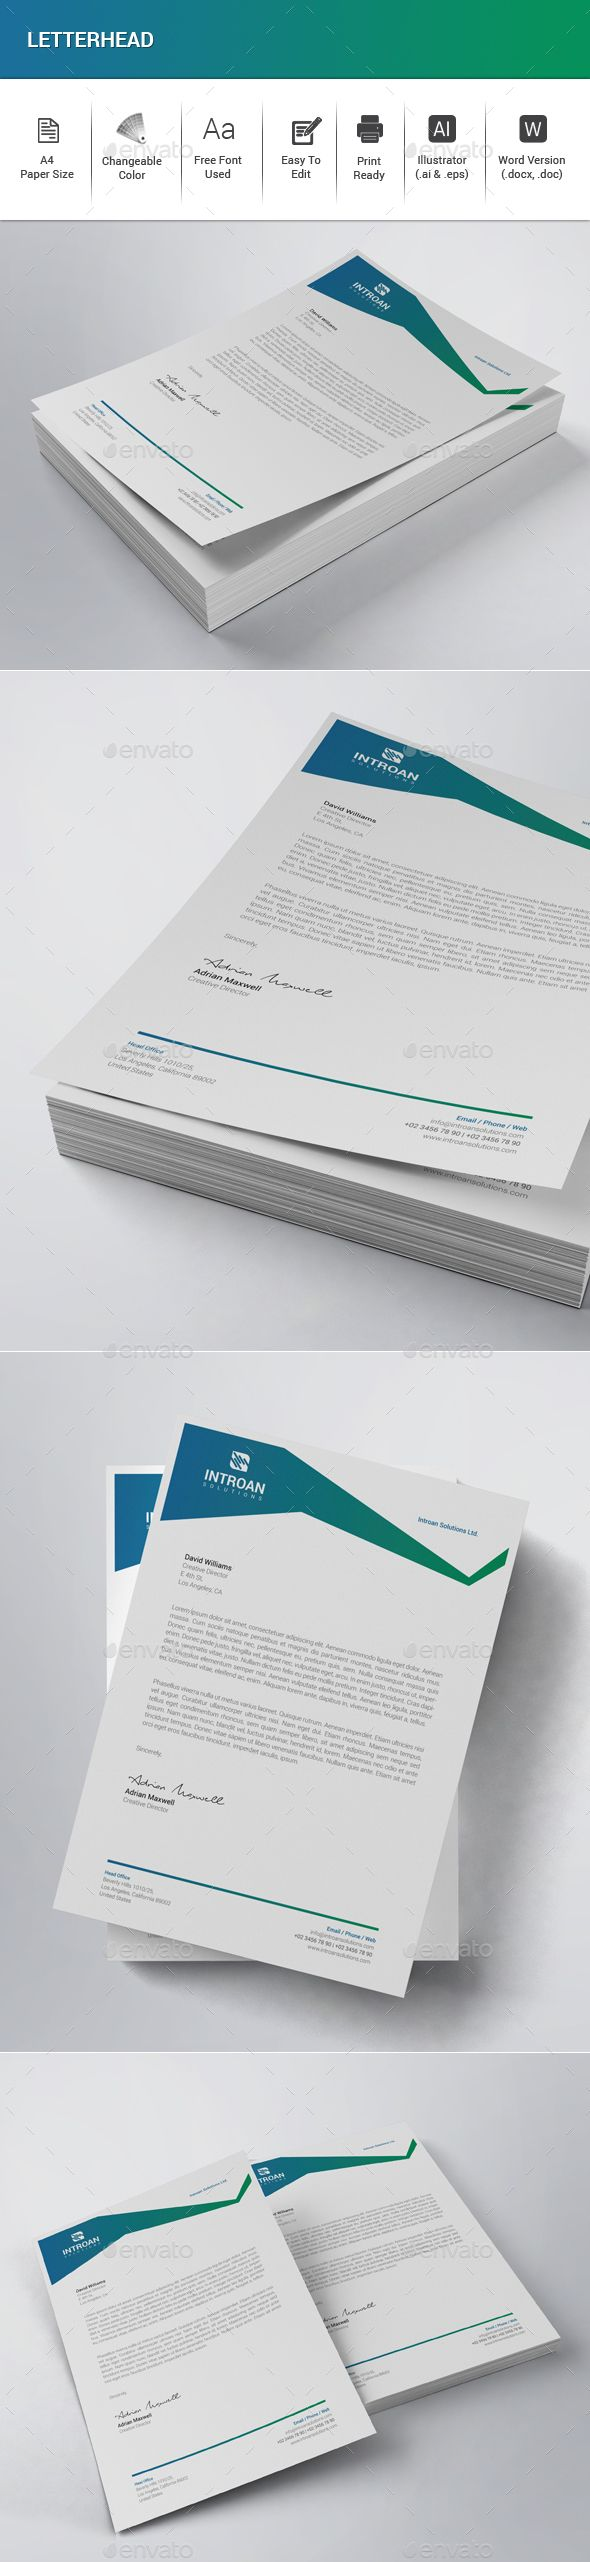 Letterhead Features:  • Illustrator (.ai & .eps) • MS Word Included (.docx & .doc) • Very Easy to Edit • Page size A4 (210×297mm) • Bleed 0.25 inch • Only Free Fonts Used • CMYK, 300DPI, Print Ready